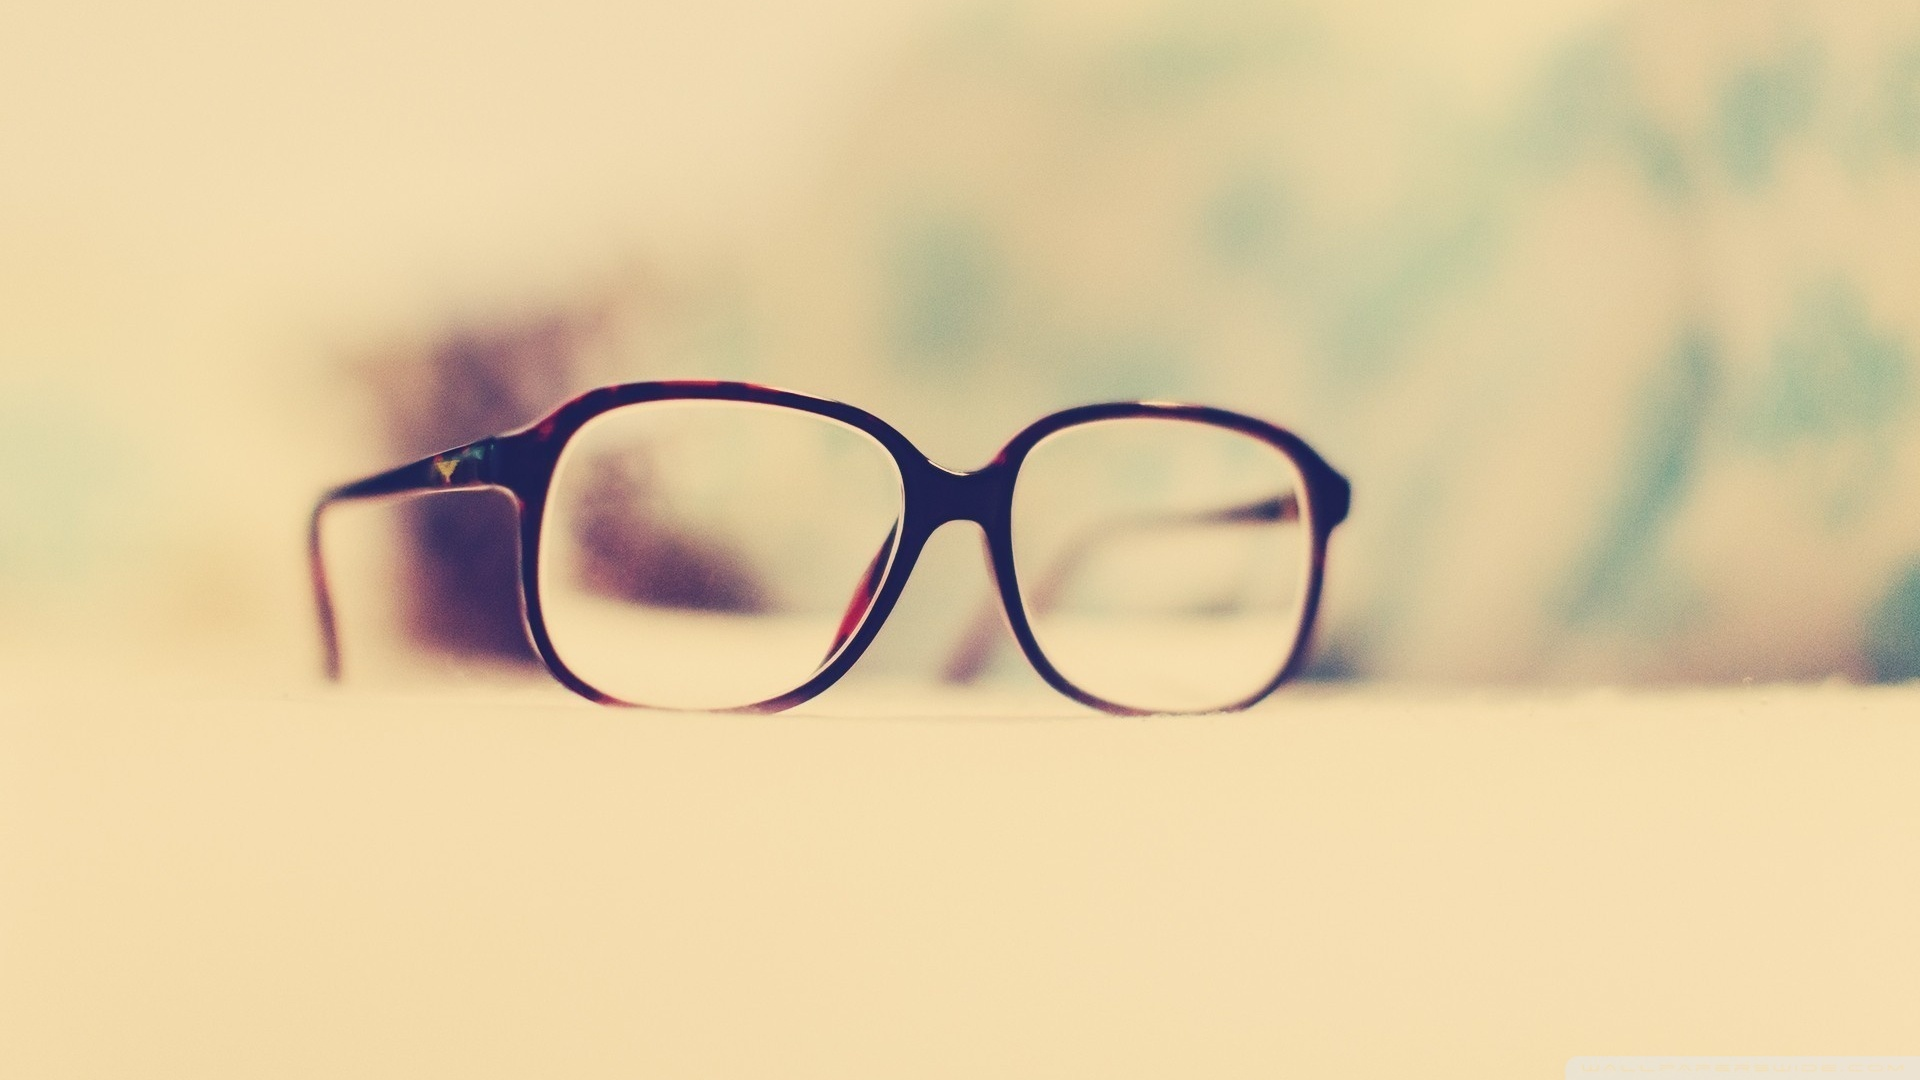 Hipster Glasses Hd Desktop Wallpaper High Definition 1920x1080px